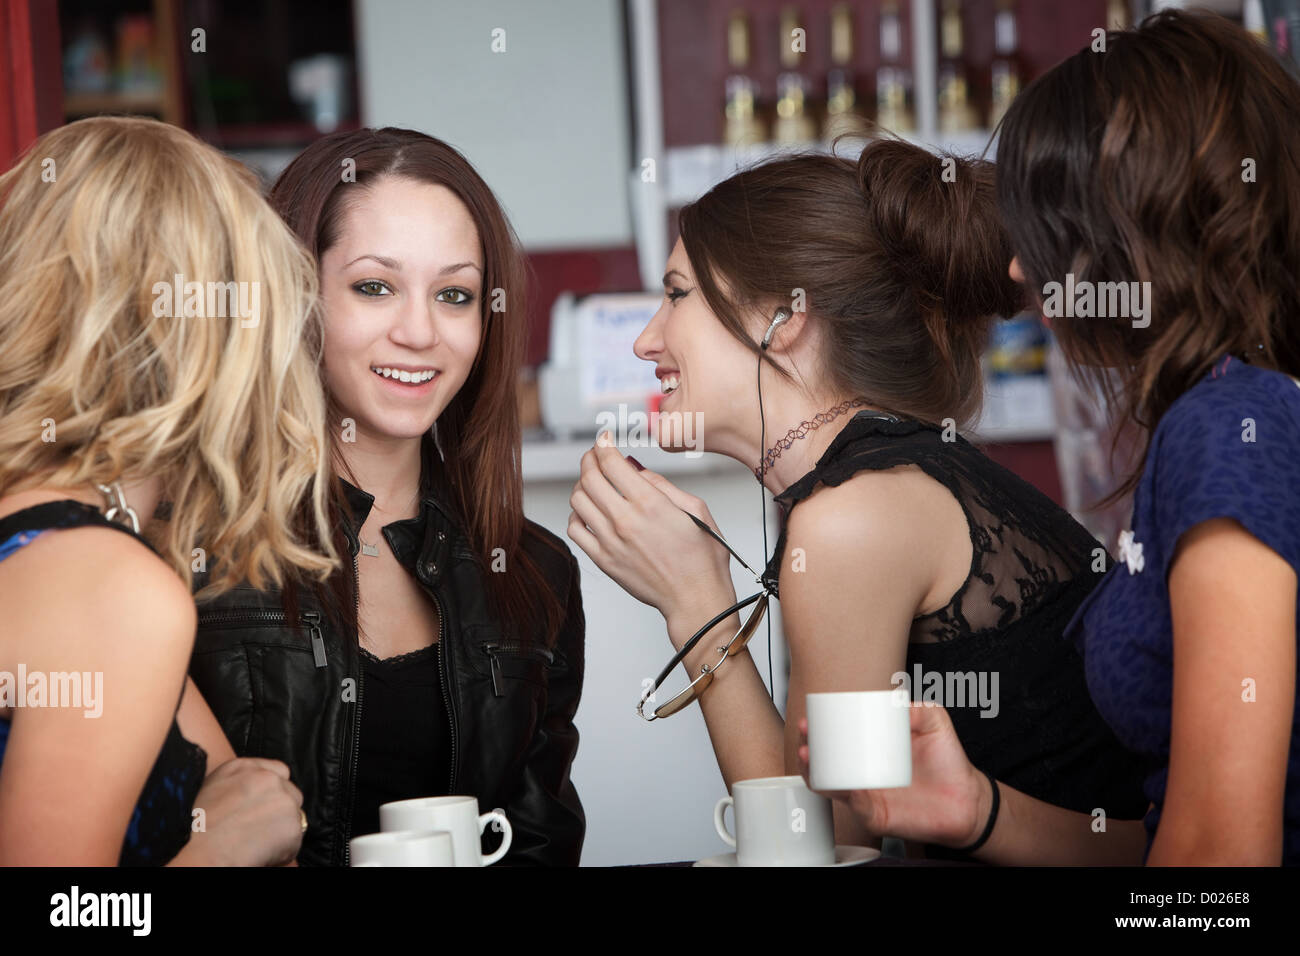 Four young women sharing secrets at a cafe - Stock Image